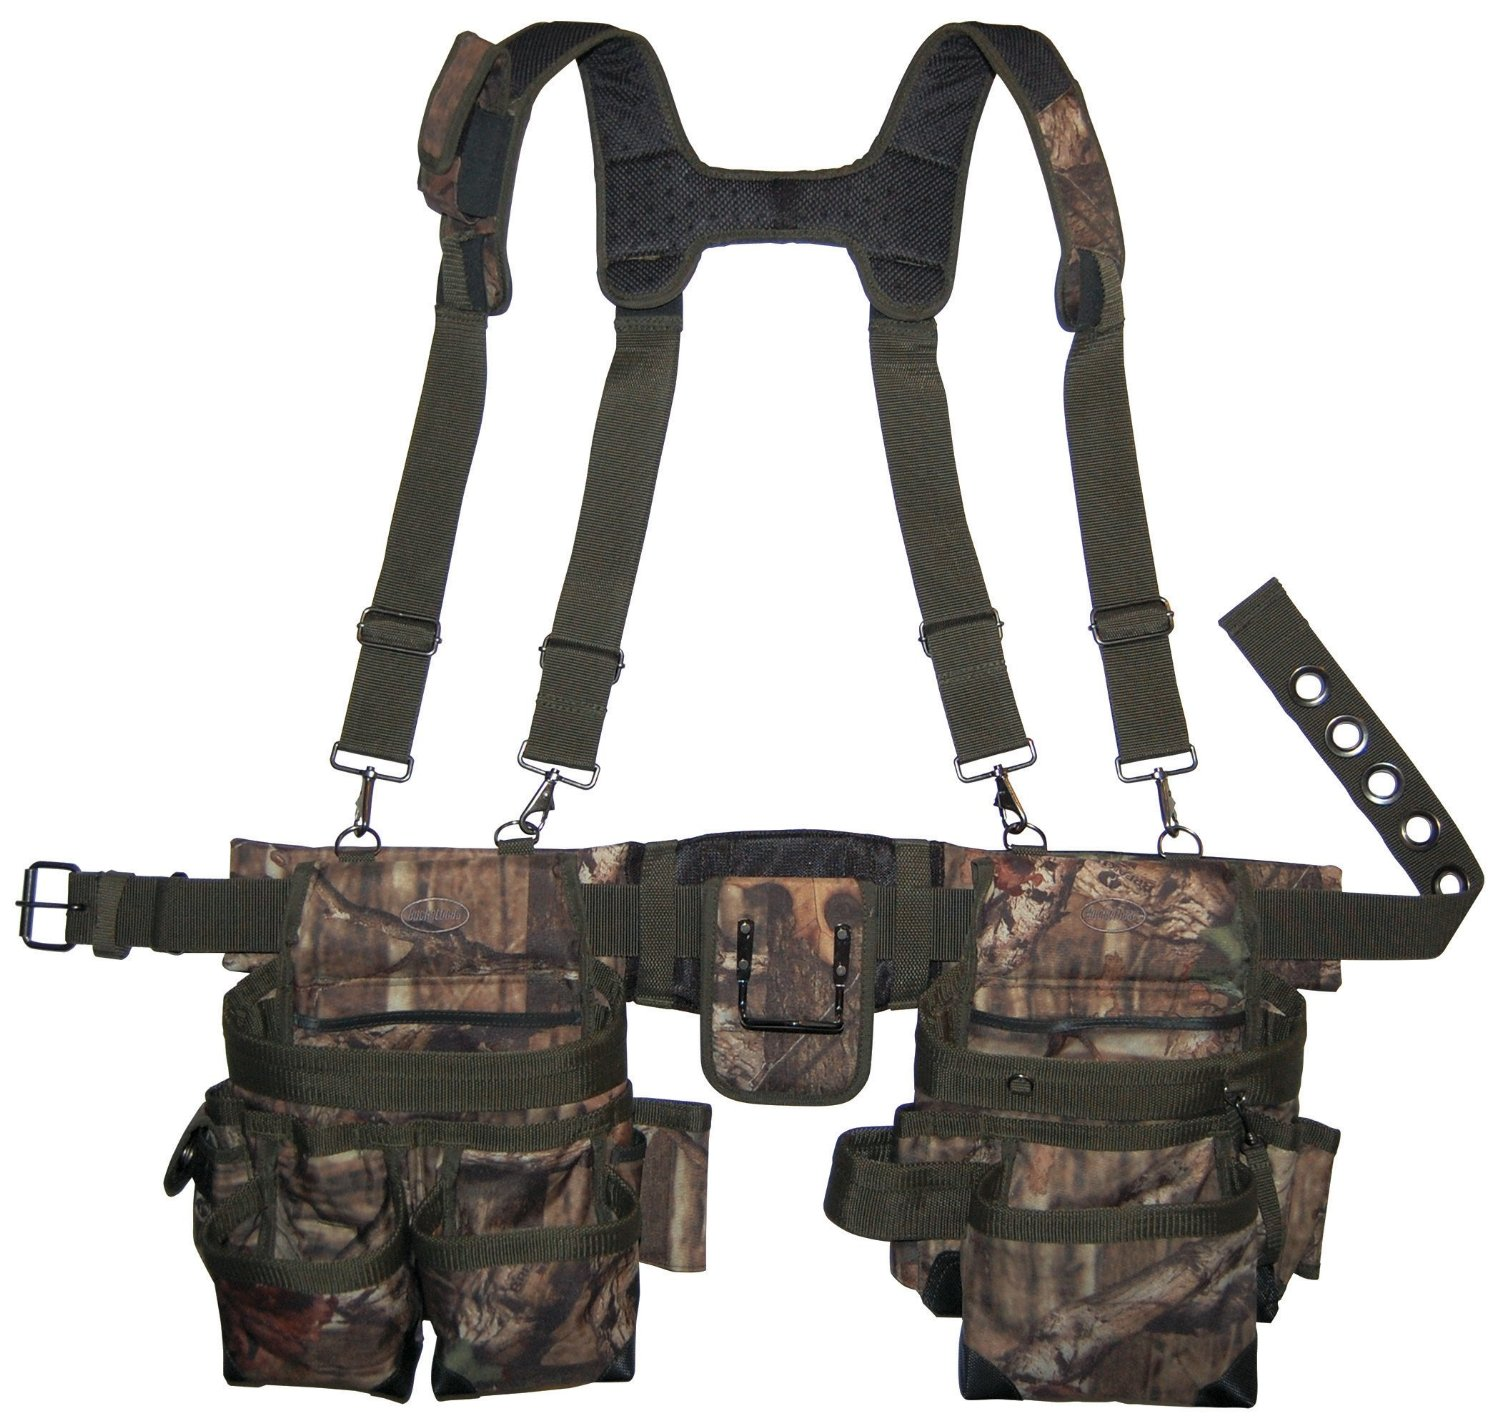 Choosing A Roofing Tool Belt The Best Tool Belt For